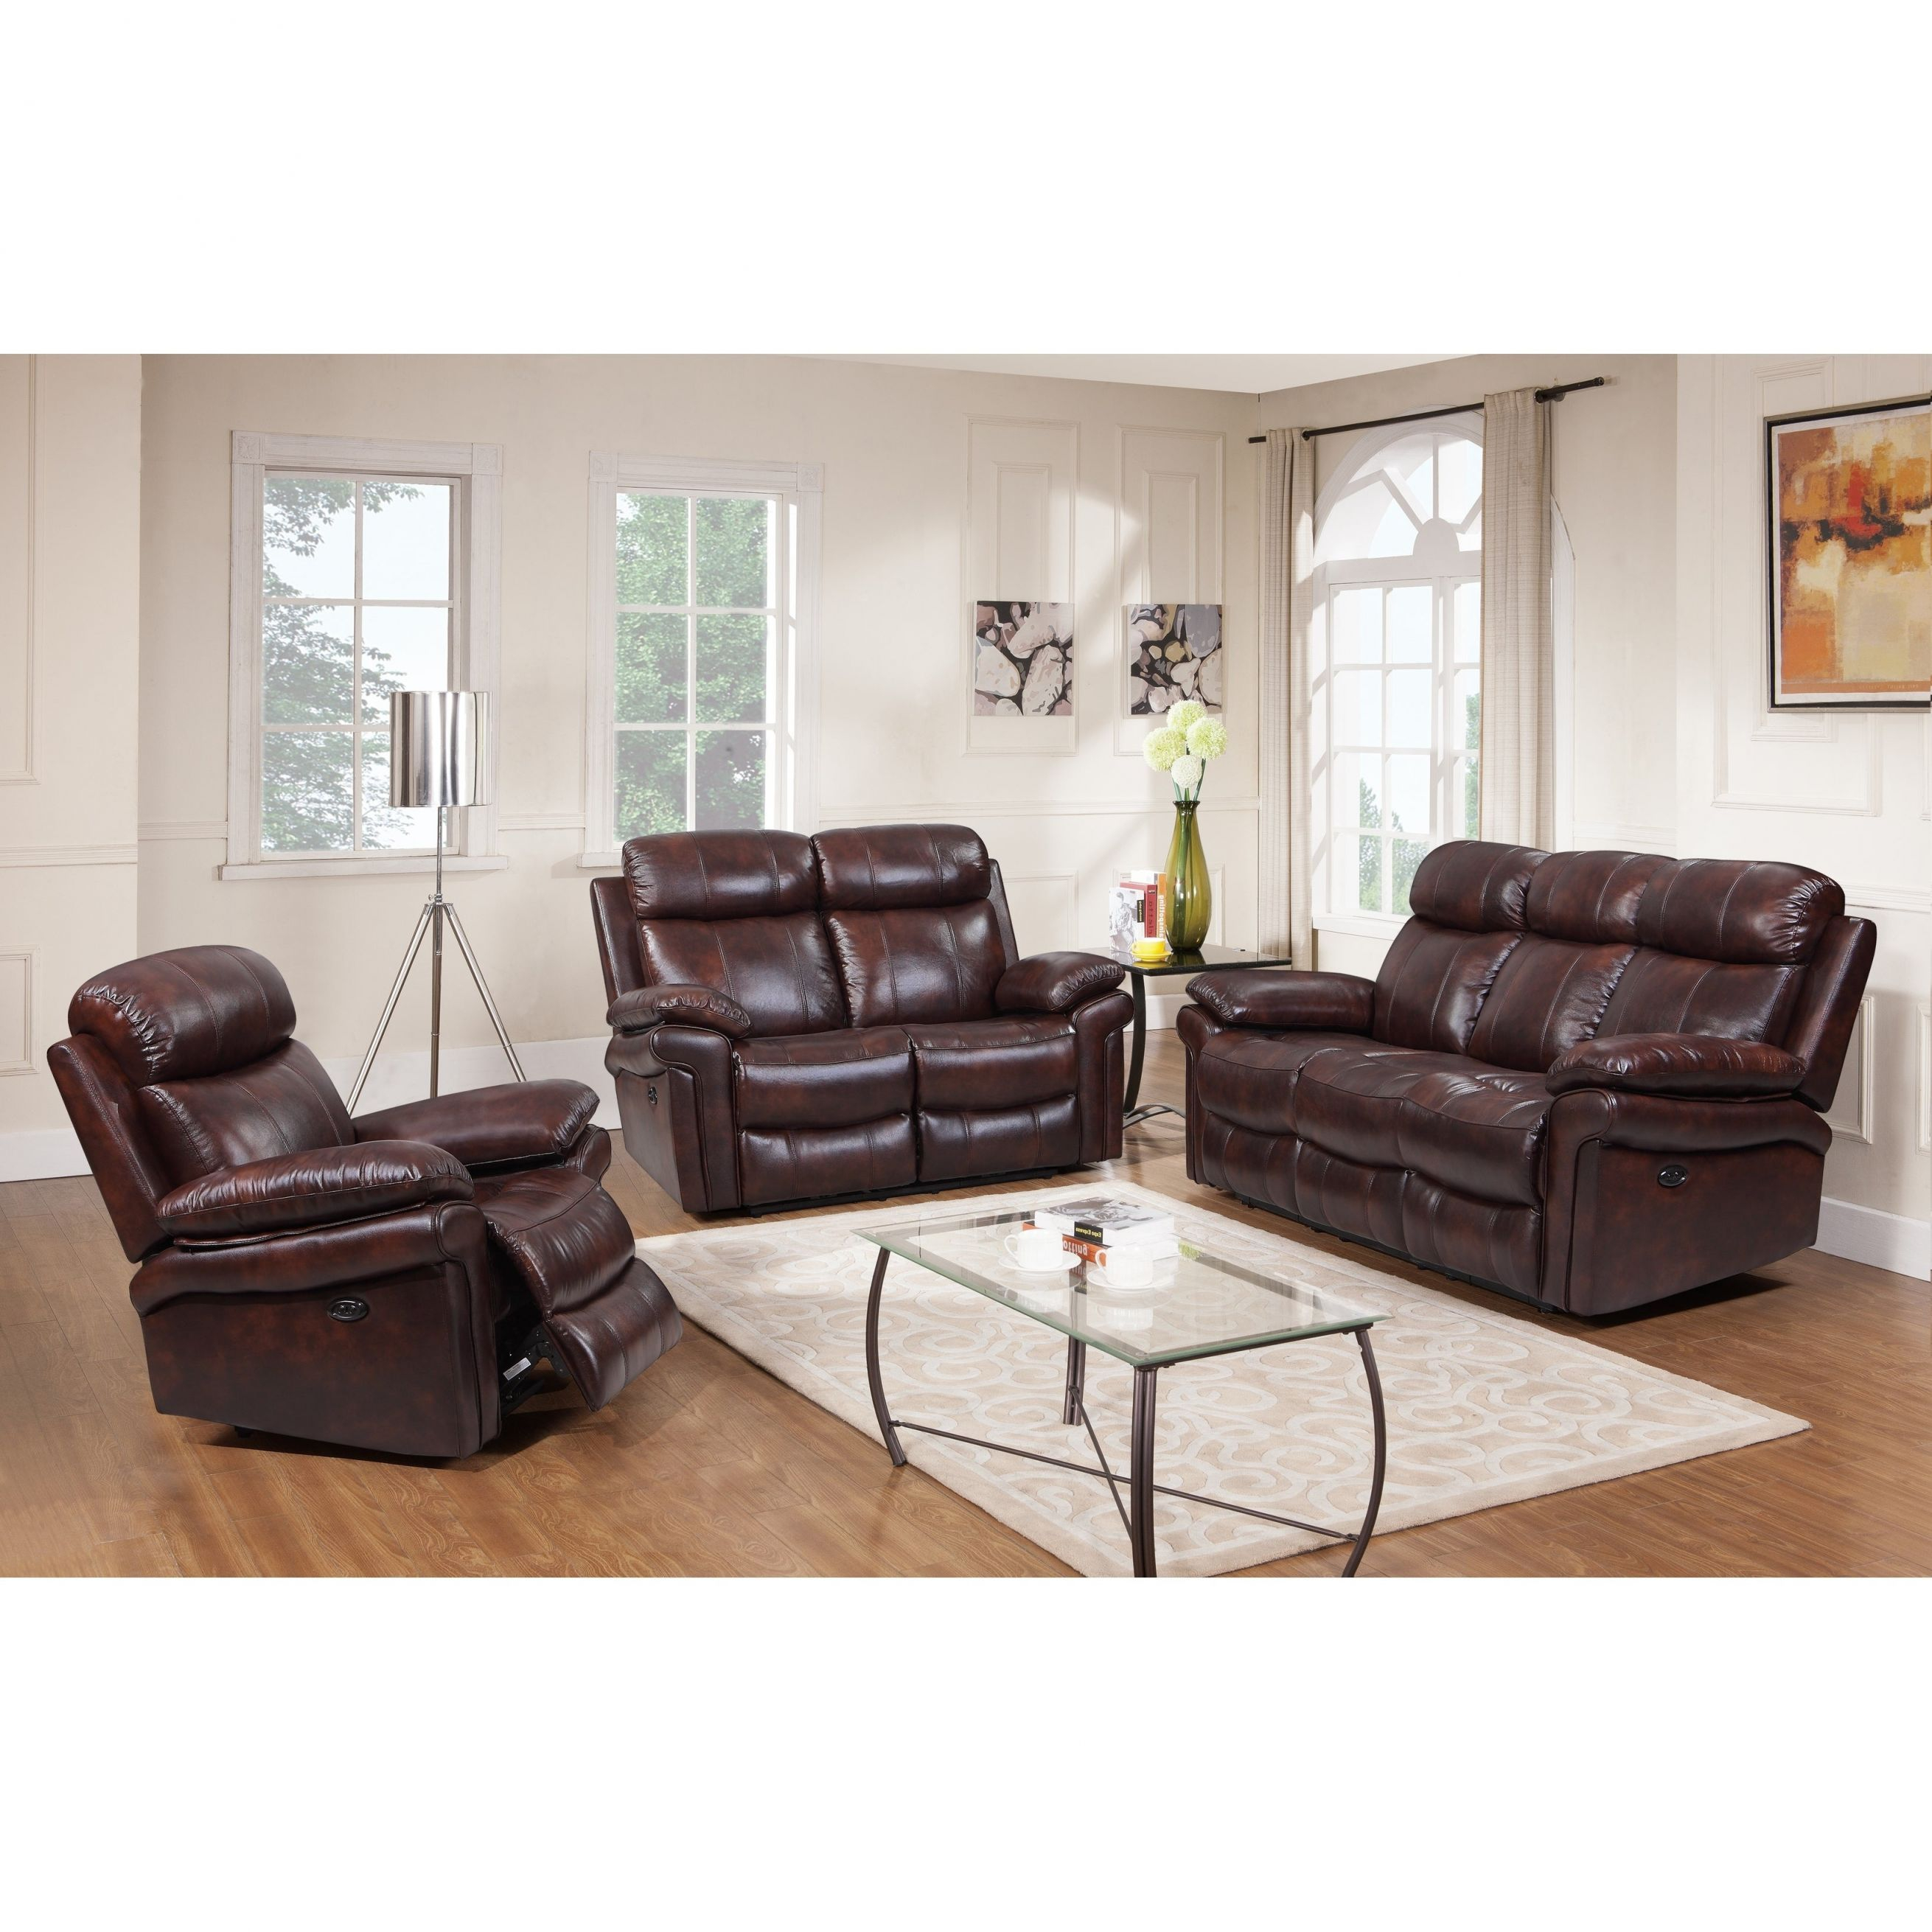 Hudson Top Grain Leather Power Reclining Living Room Set (Brown/ Blue/ Red) regarding Awesome Leather Living Room Sets